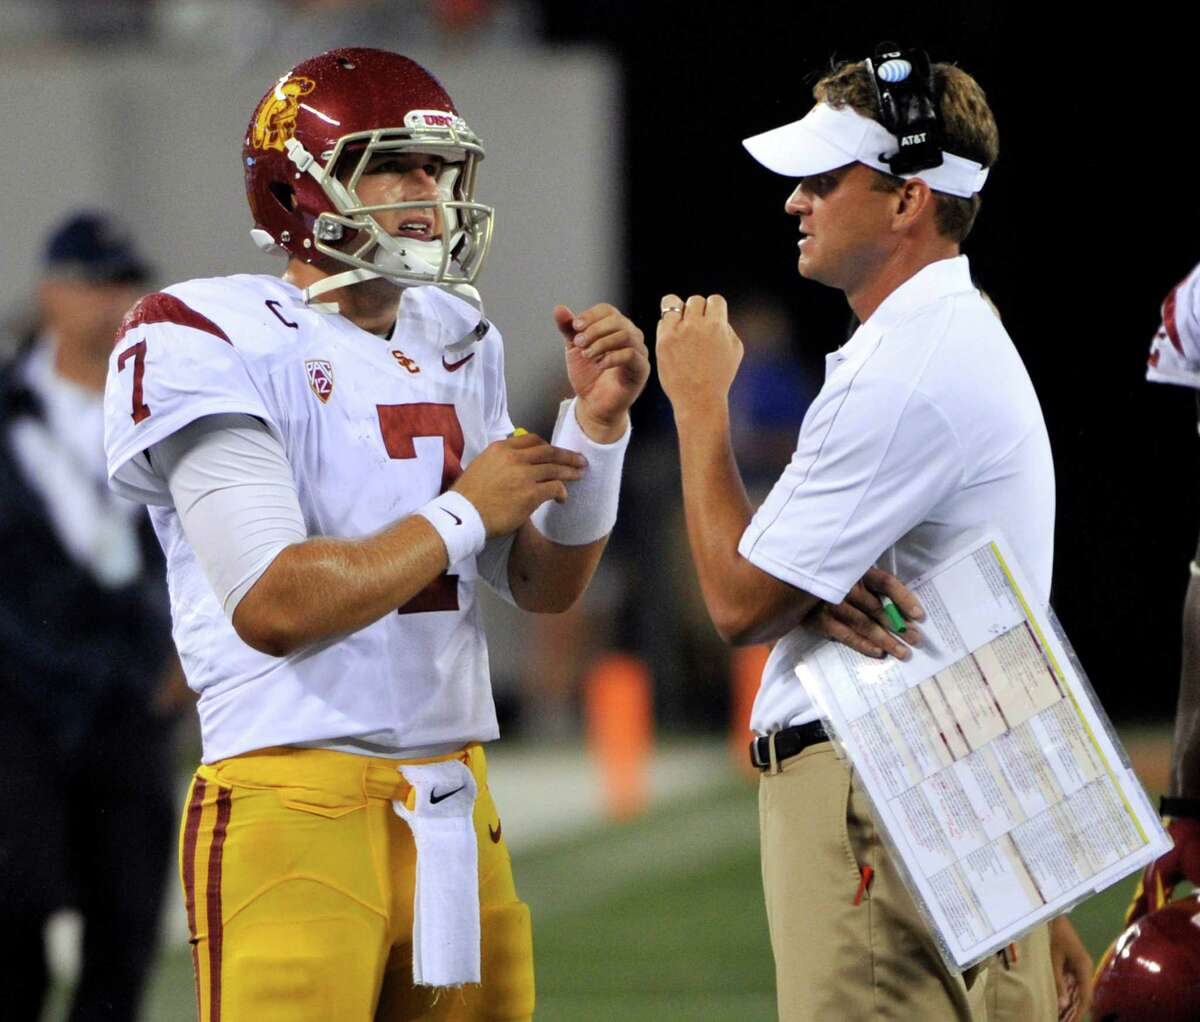 Southern California coach Lane Kiffin, right, talks with quarterback Matt Barkley during the fourth quarter of an NCAA college football game against Syracuse on Saturday, Sept. 8, 2012, in East Rutherford, N.J.